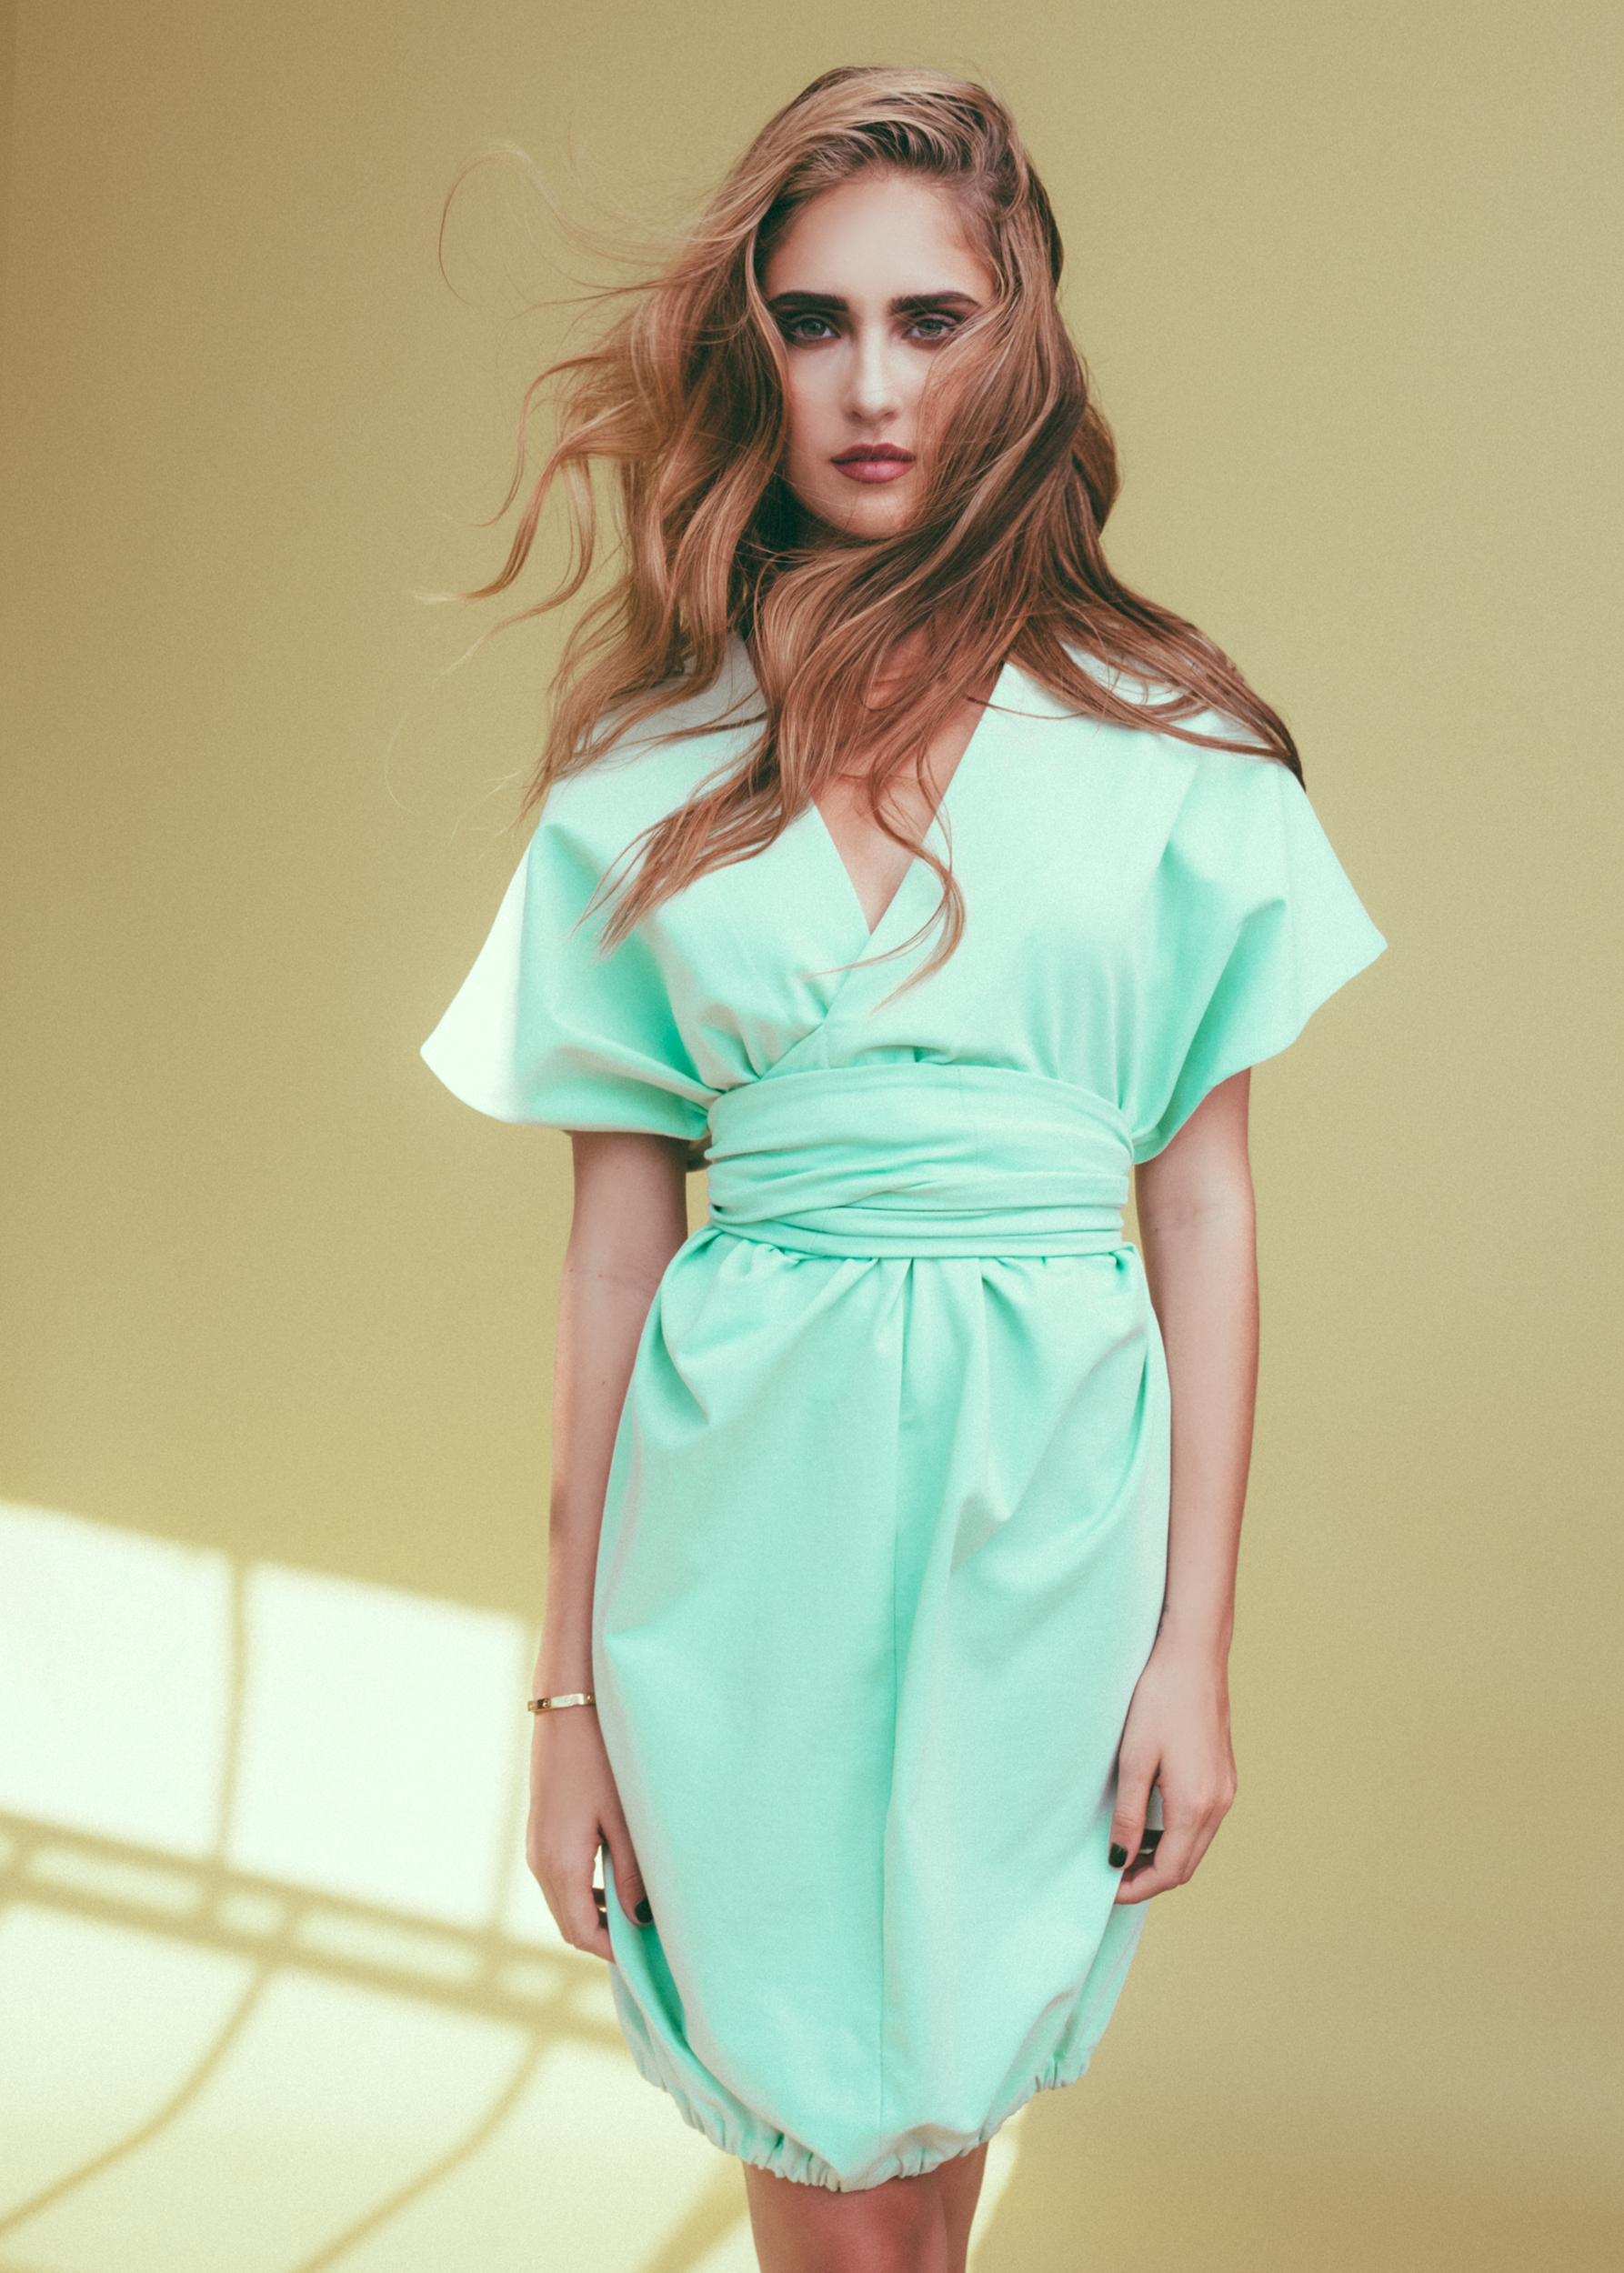 jessica-faulkner-mint-green-dress-womens-contemporary-clothing.jpg